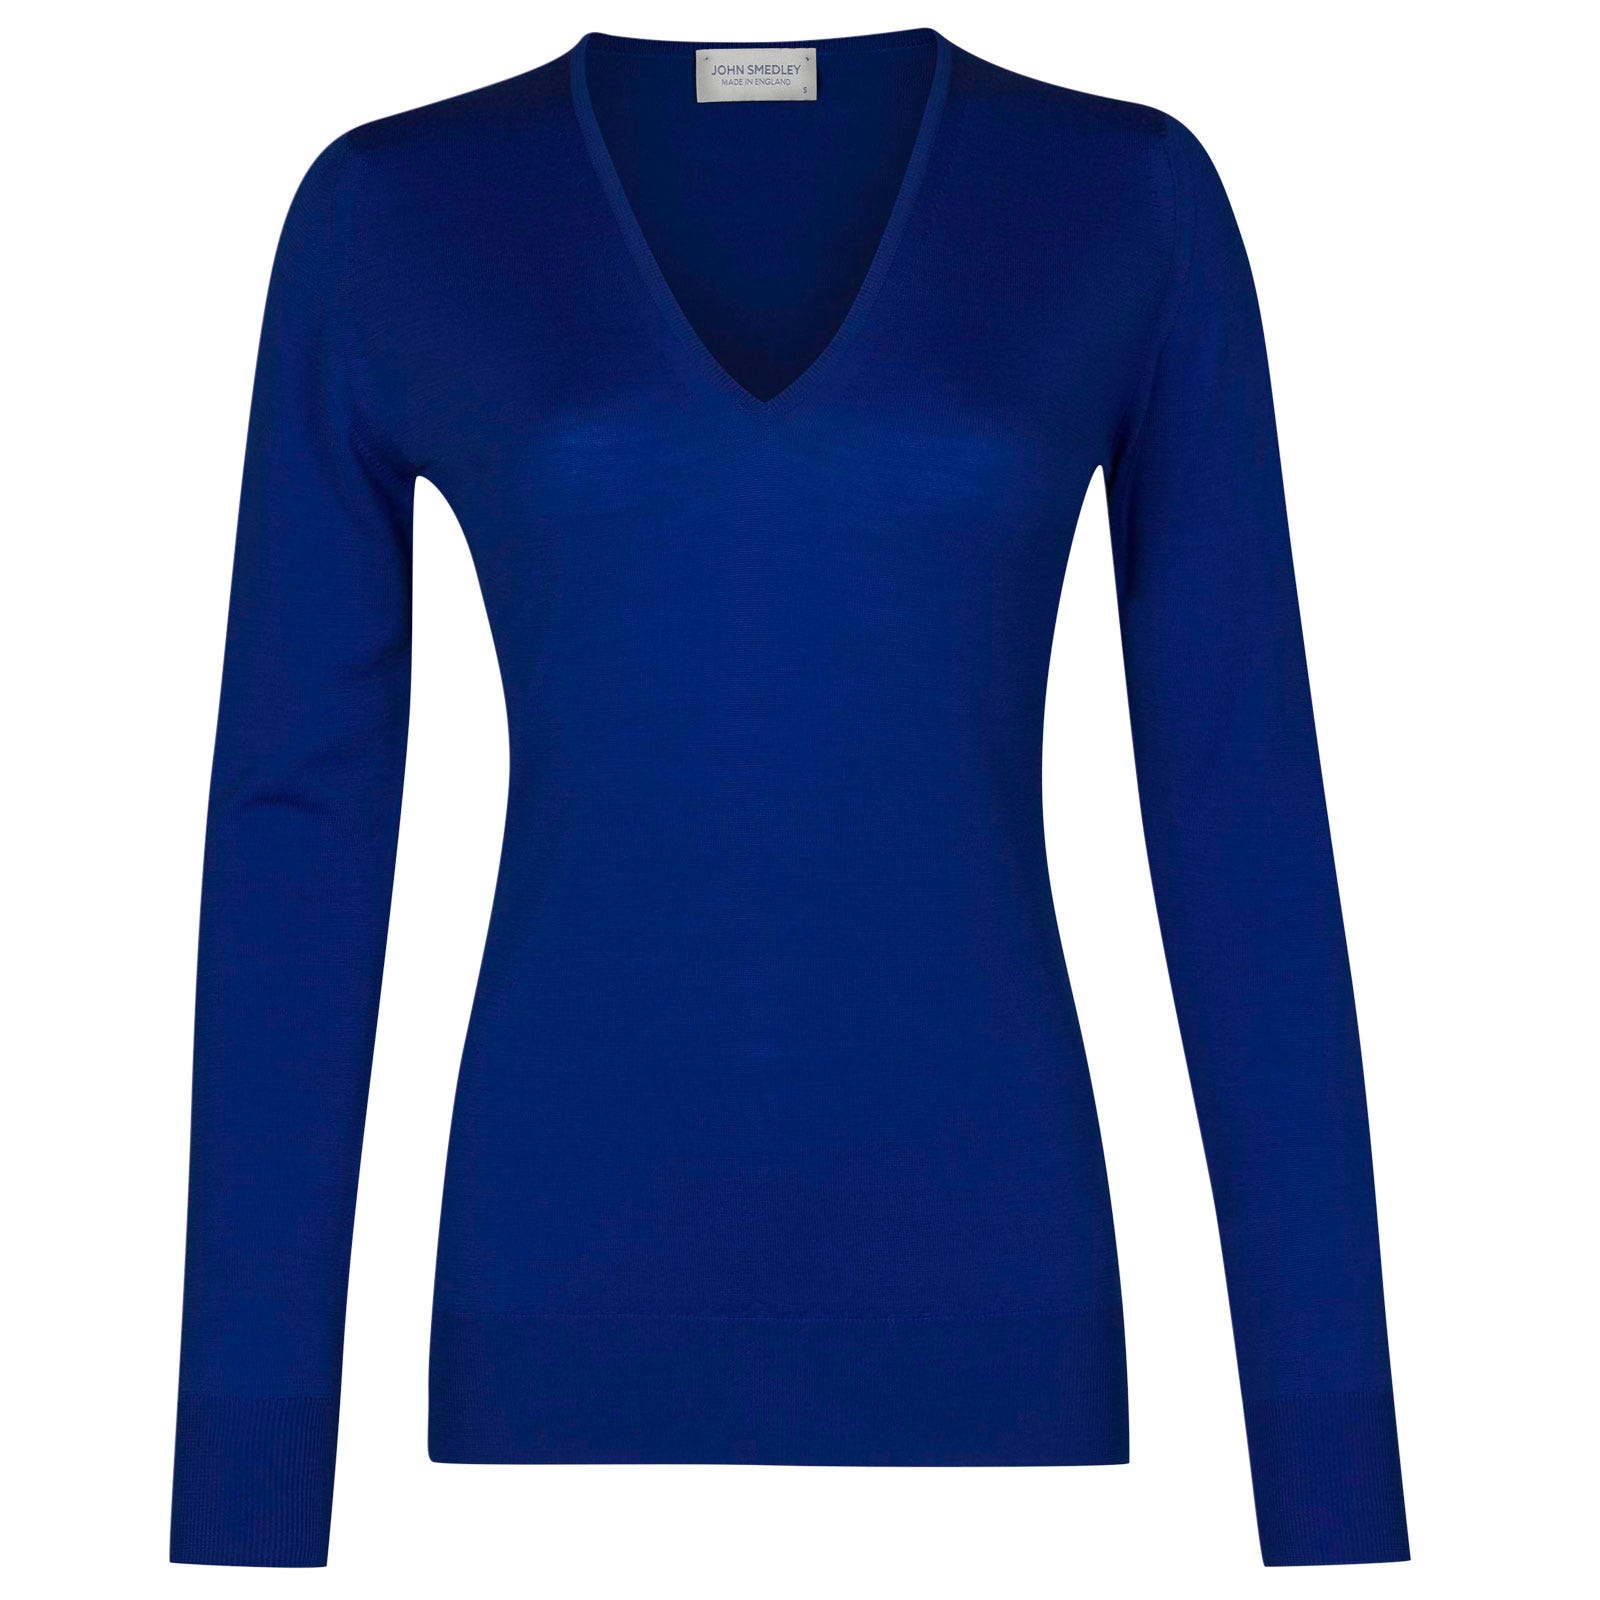 John Smedley orchid Merino Wool Sweater in Coniston Blue-XL